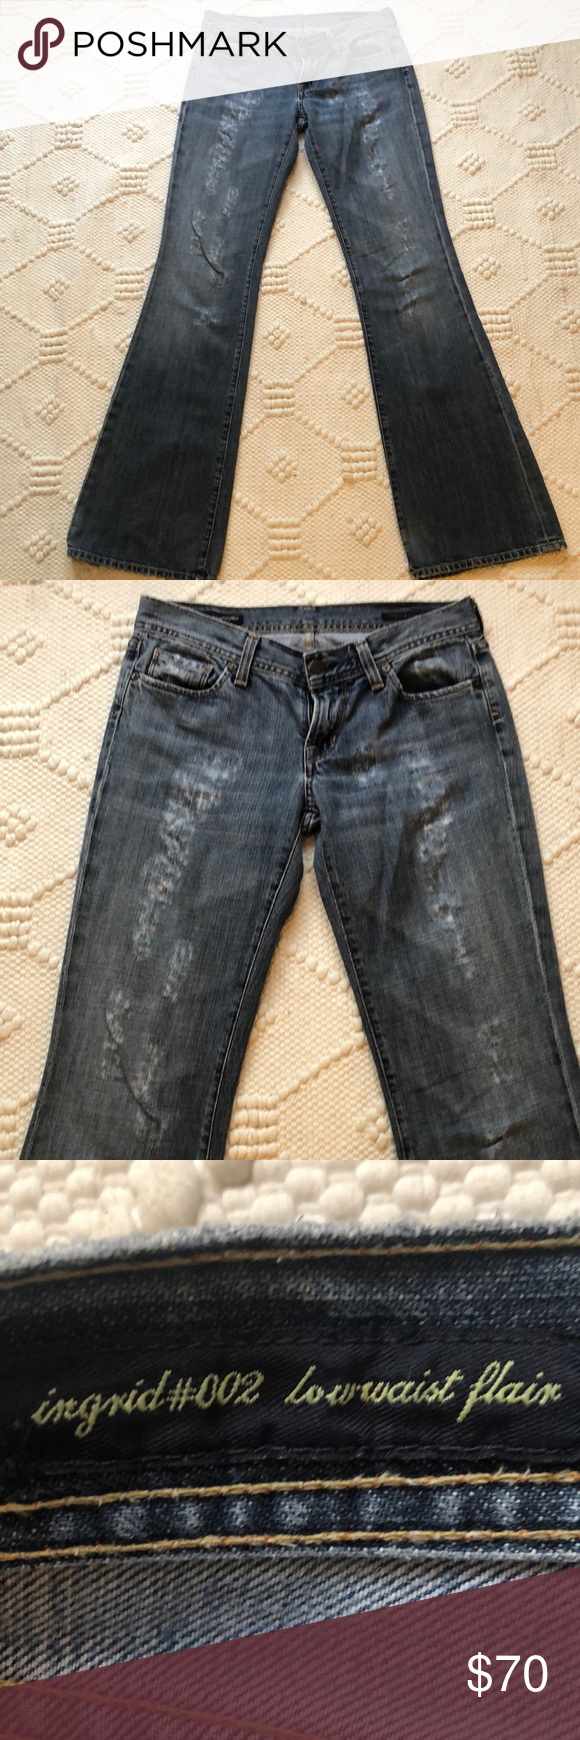 Citizens of Humanity Distressed Jeans Perfectly distressed Citizens of Humanity Distressed Jeans. Ingrid#002 low waist flair jeans. Excellent condition. These are a must have for fall!  Size 28 Citizens Of Humanity Jeans Flare & Wide Leg